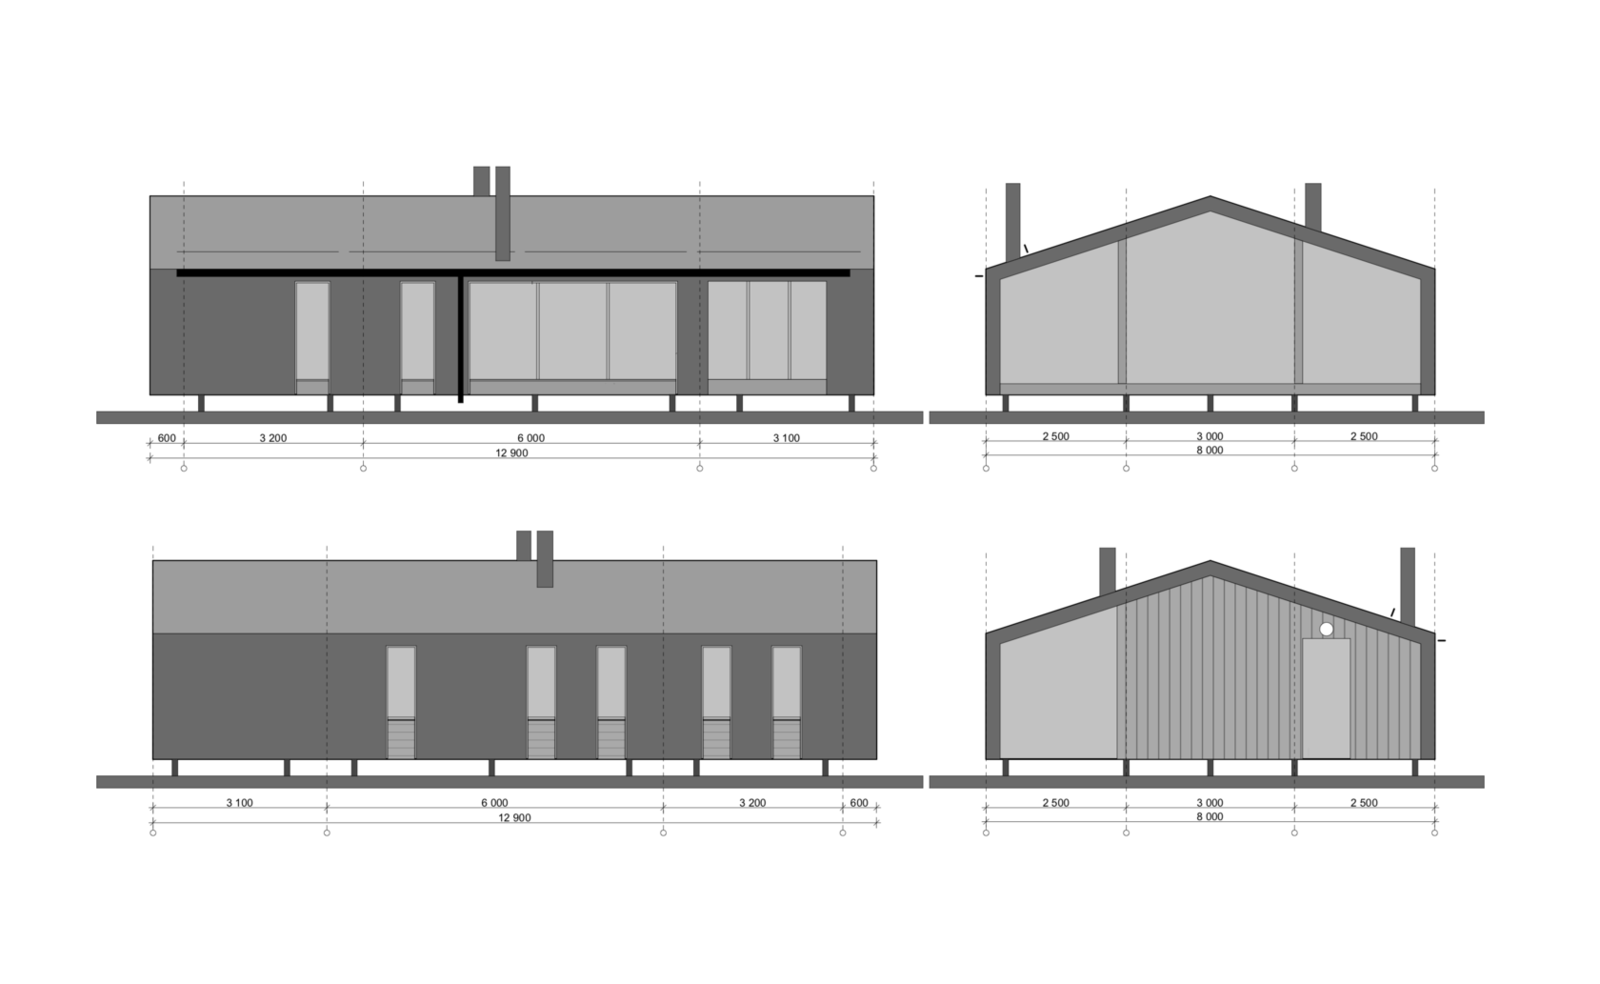 DD 43 facade drawing  Photo 17 of 22 in DublDom Prefab Homes Can Be Built in One Day